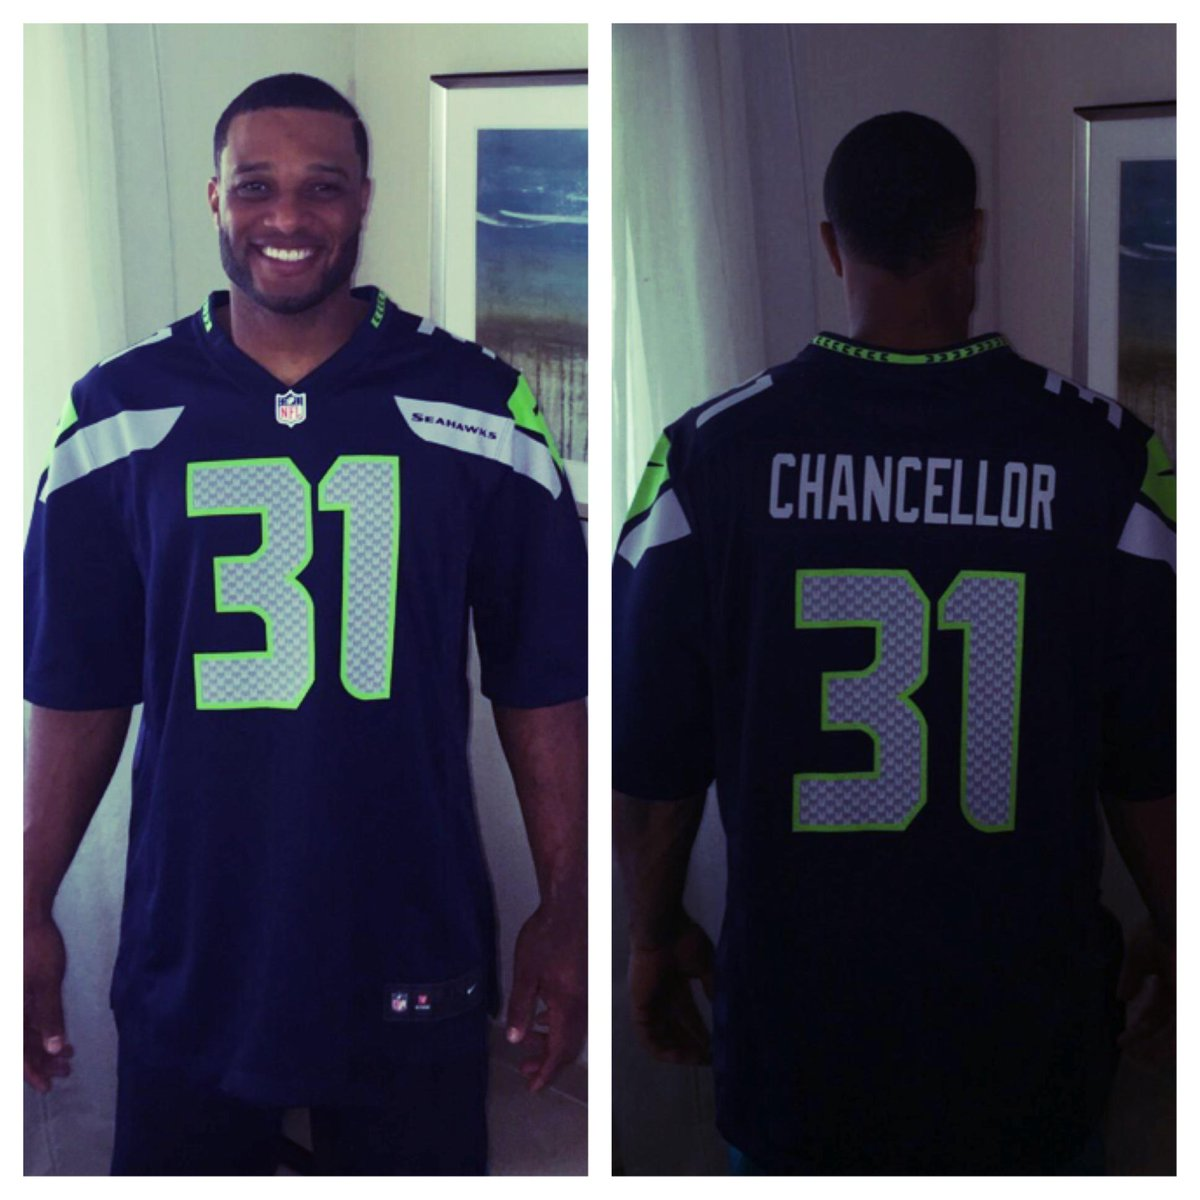 So proud to rep Seattle! Congrats @Seahawks on another trip to the #SuperBowl http://t.co/g6AIvd2lOq